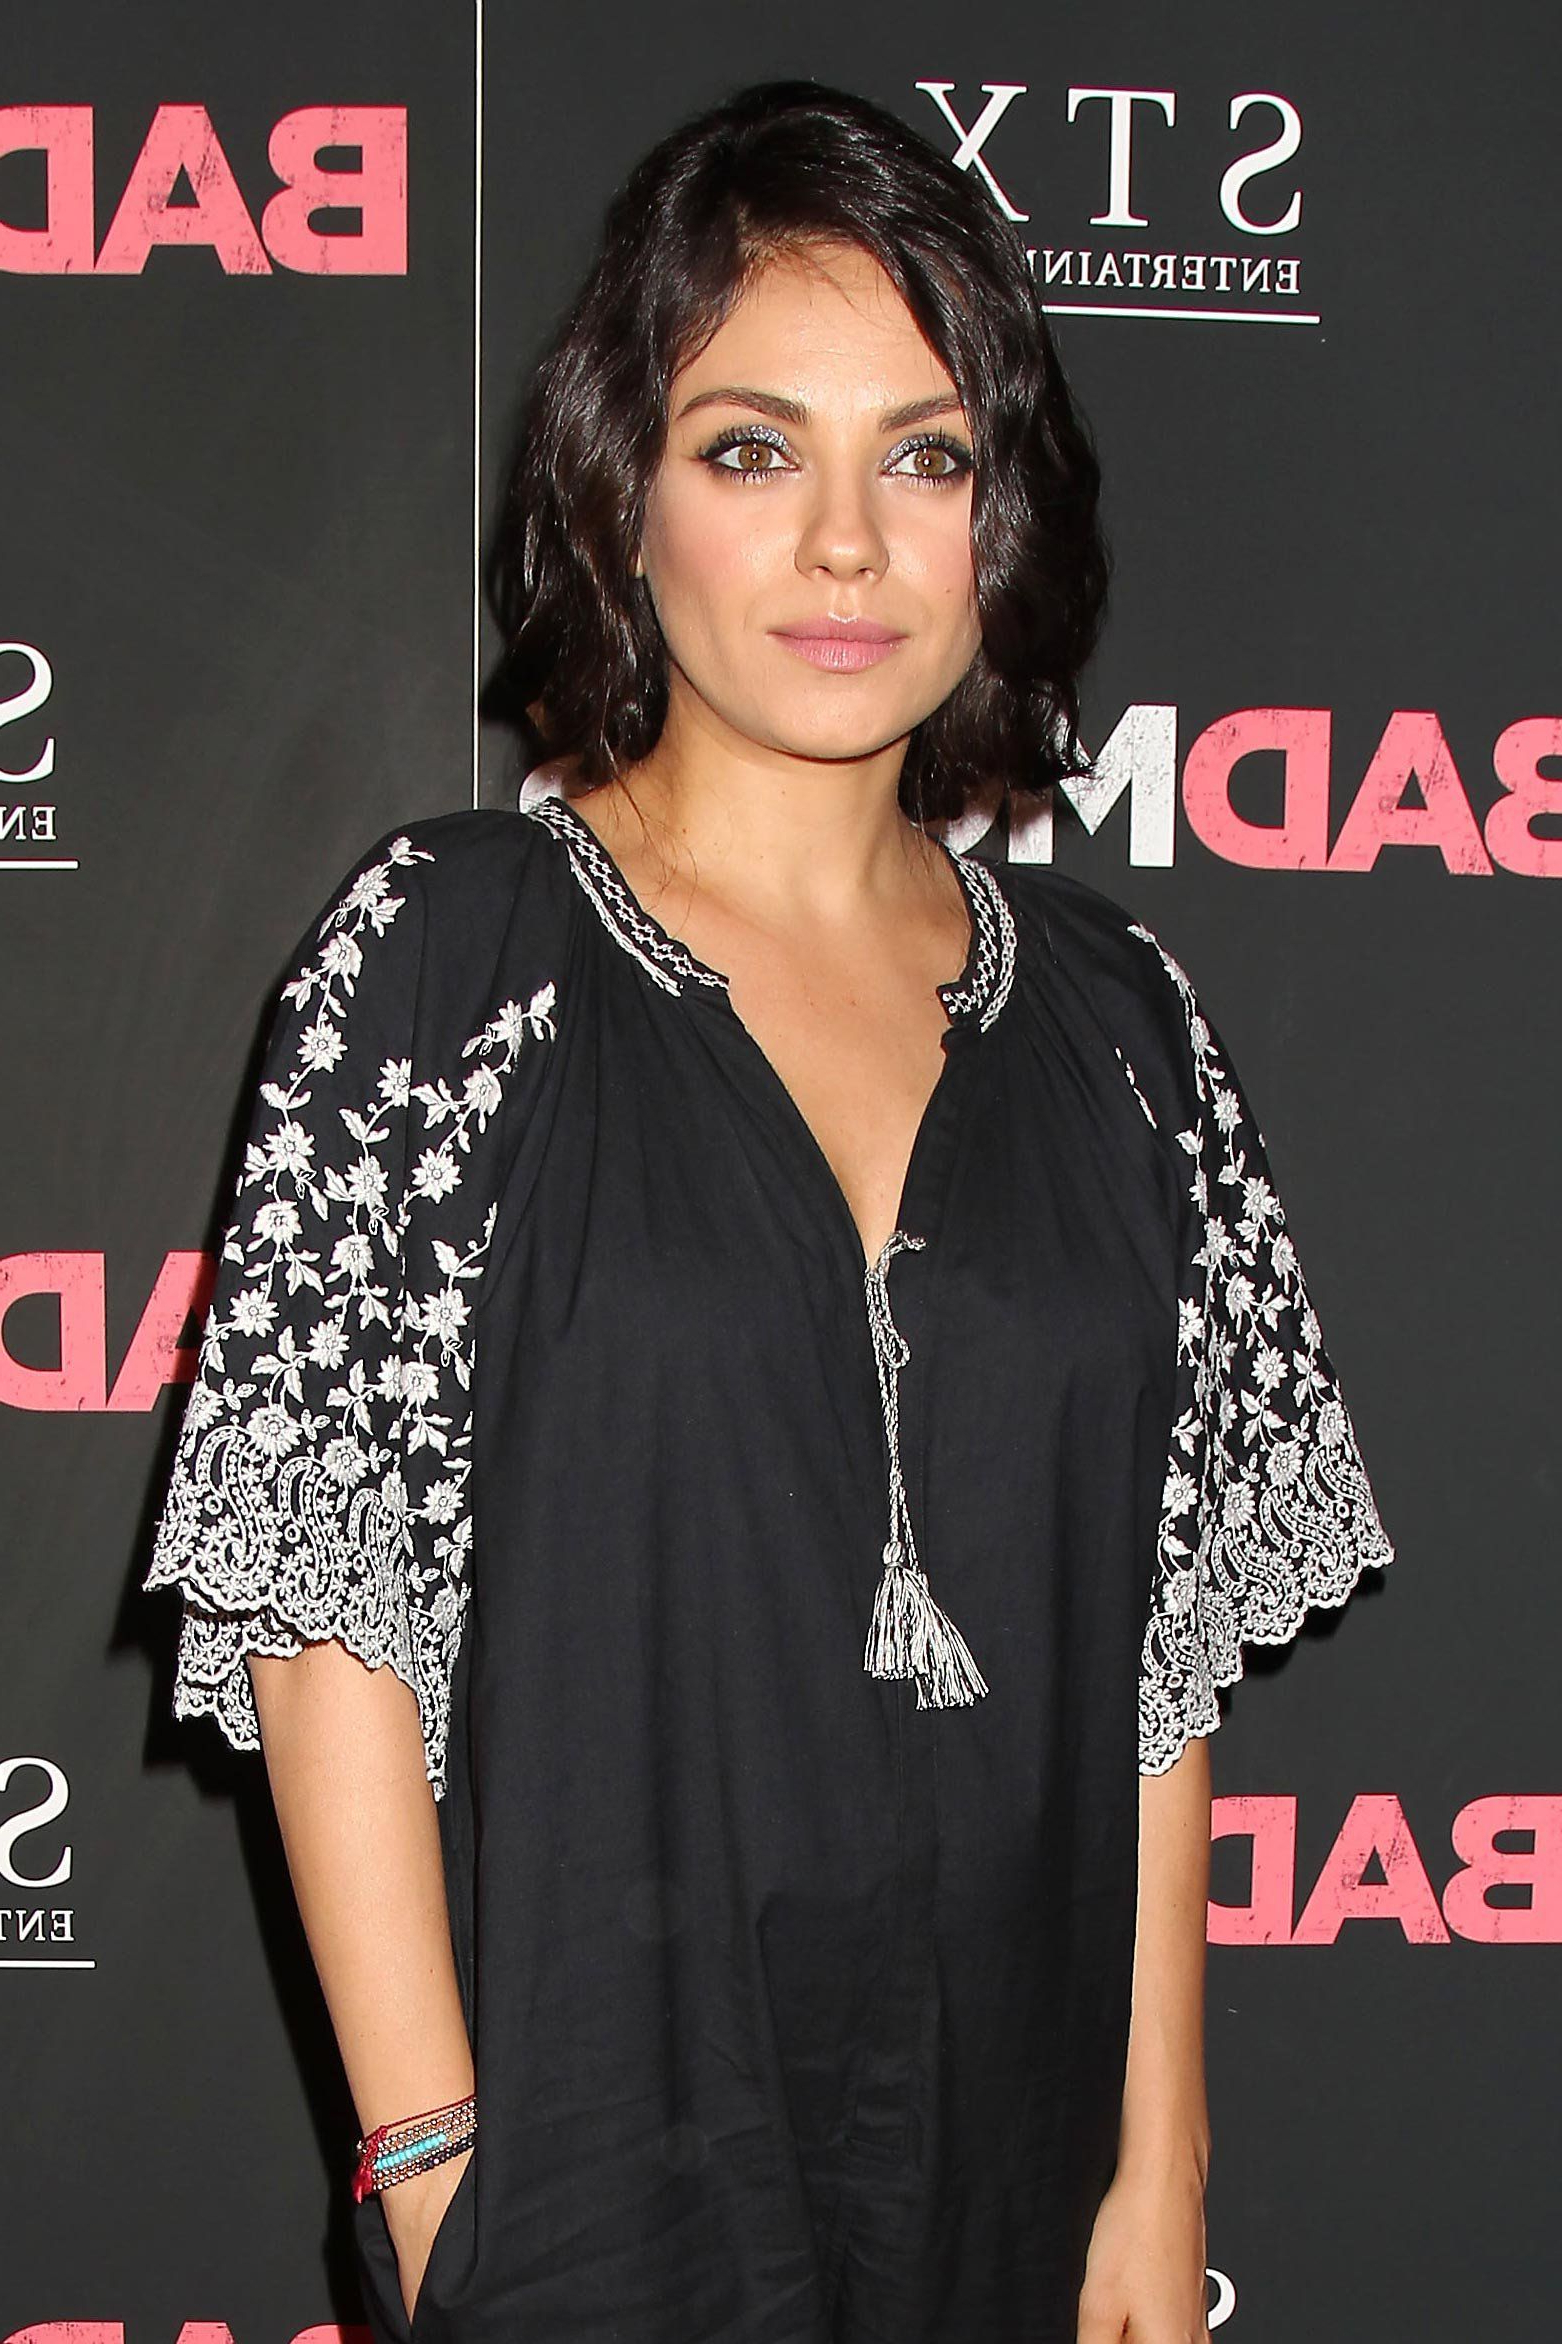 So This Is What Mila Kunis Looks Like With Short Hair In 2018 Pertaining To Mila Kunis Short Hairstyles (View 3 of 25)